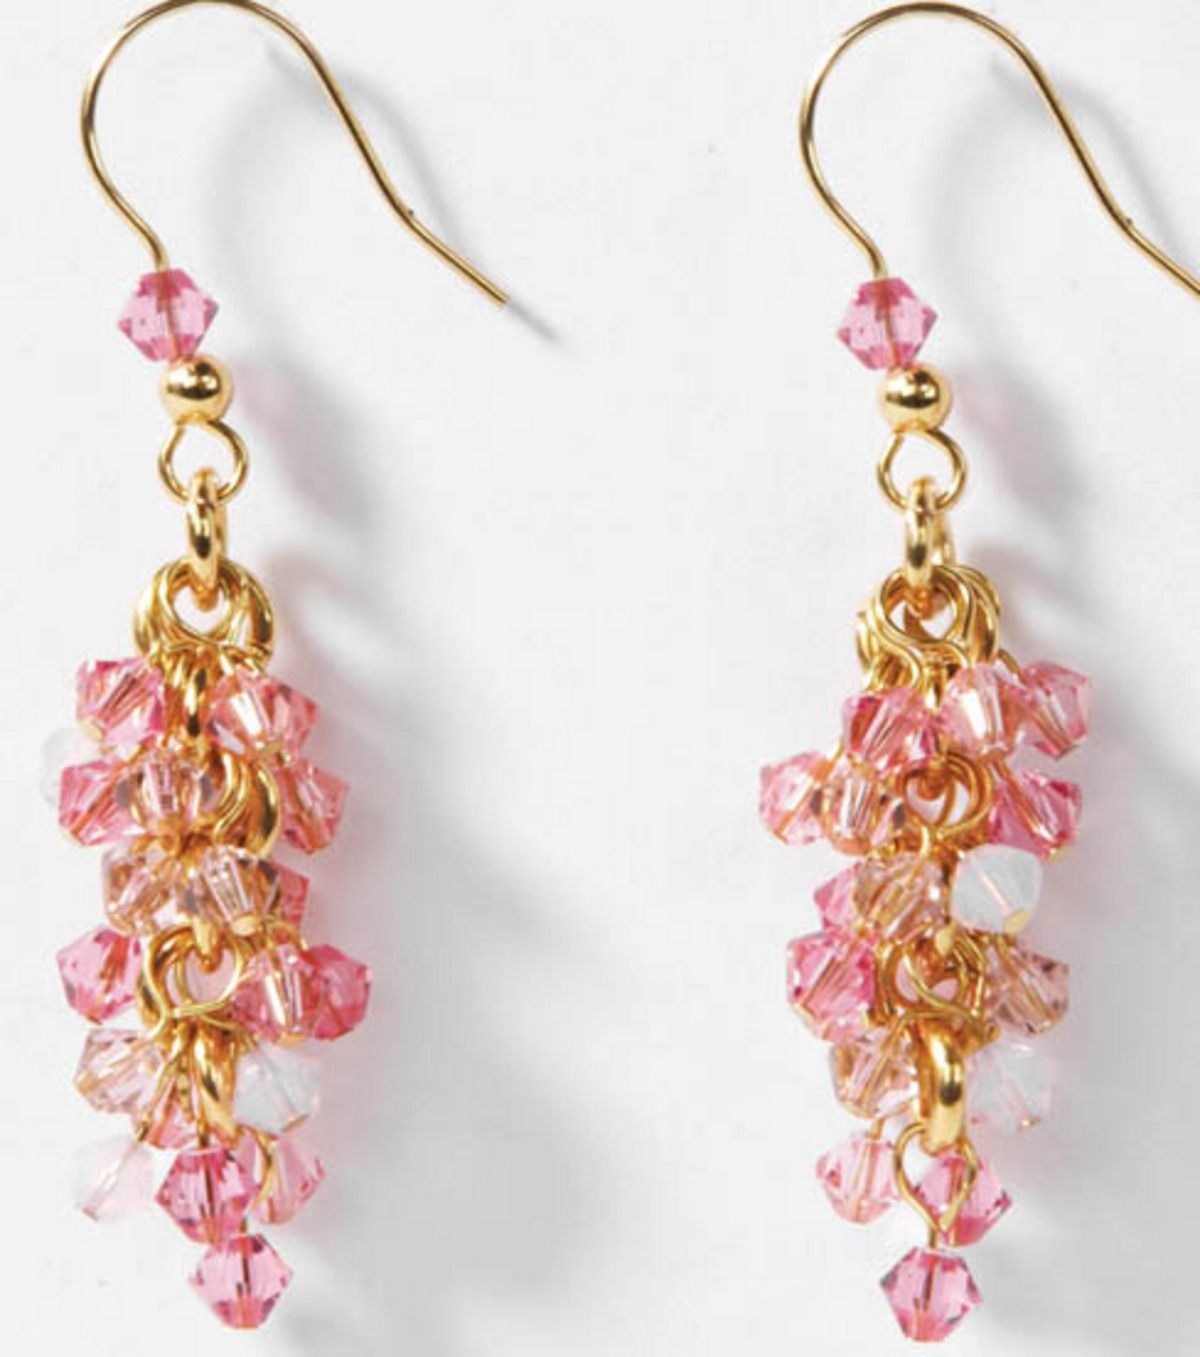 pink cluster earrings for #mothersday | mother's day jewelry diy